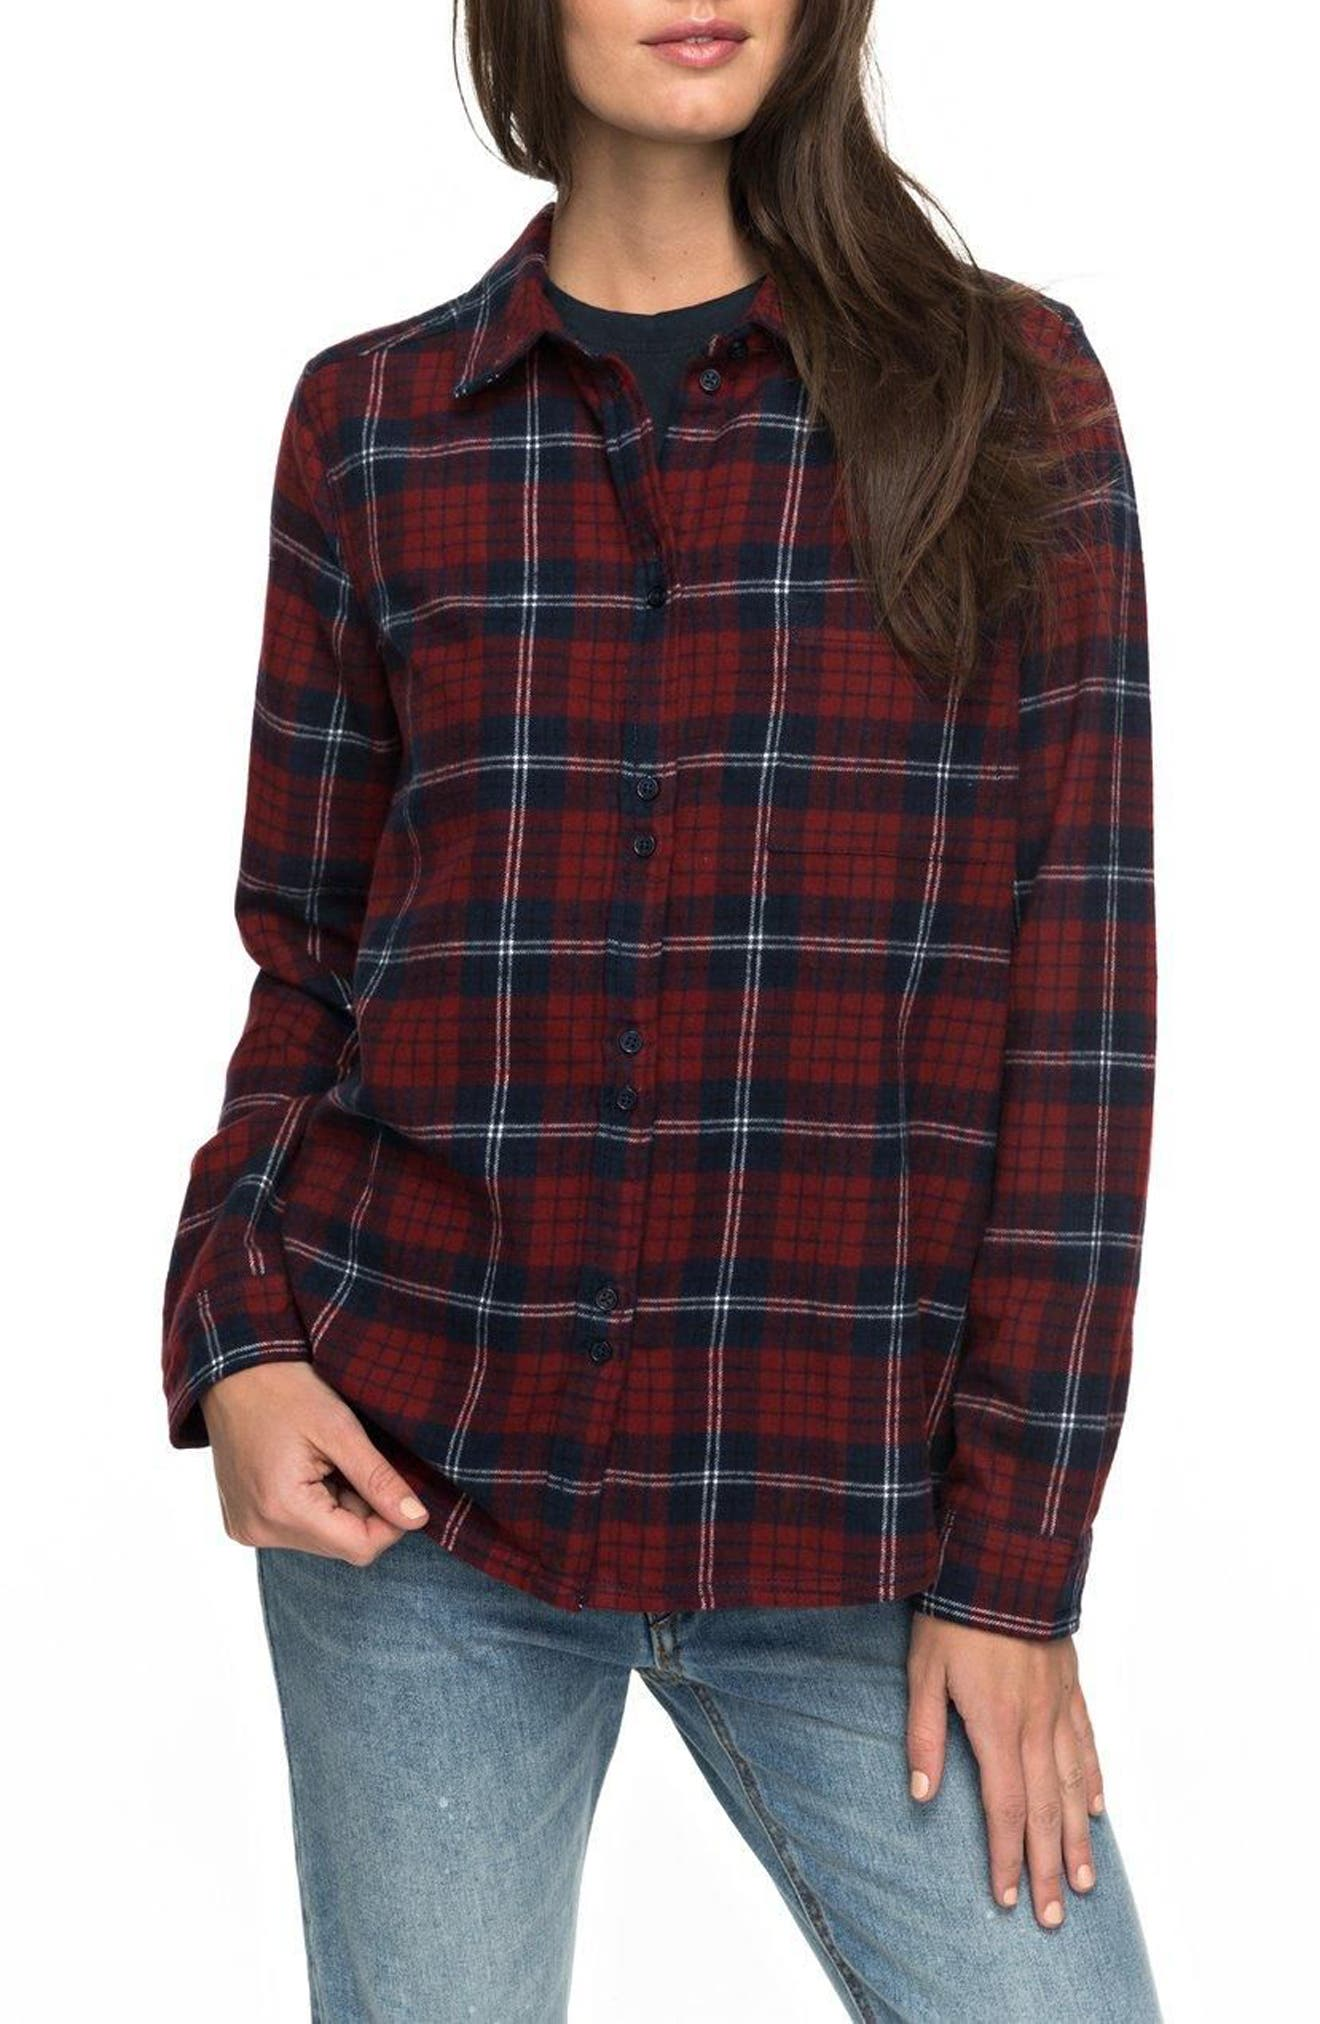 Alternate Image 1 Selected - Roxy Heavy Feelings Plaid Shirt